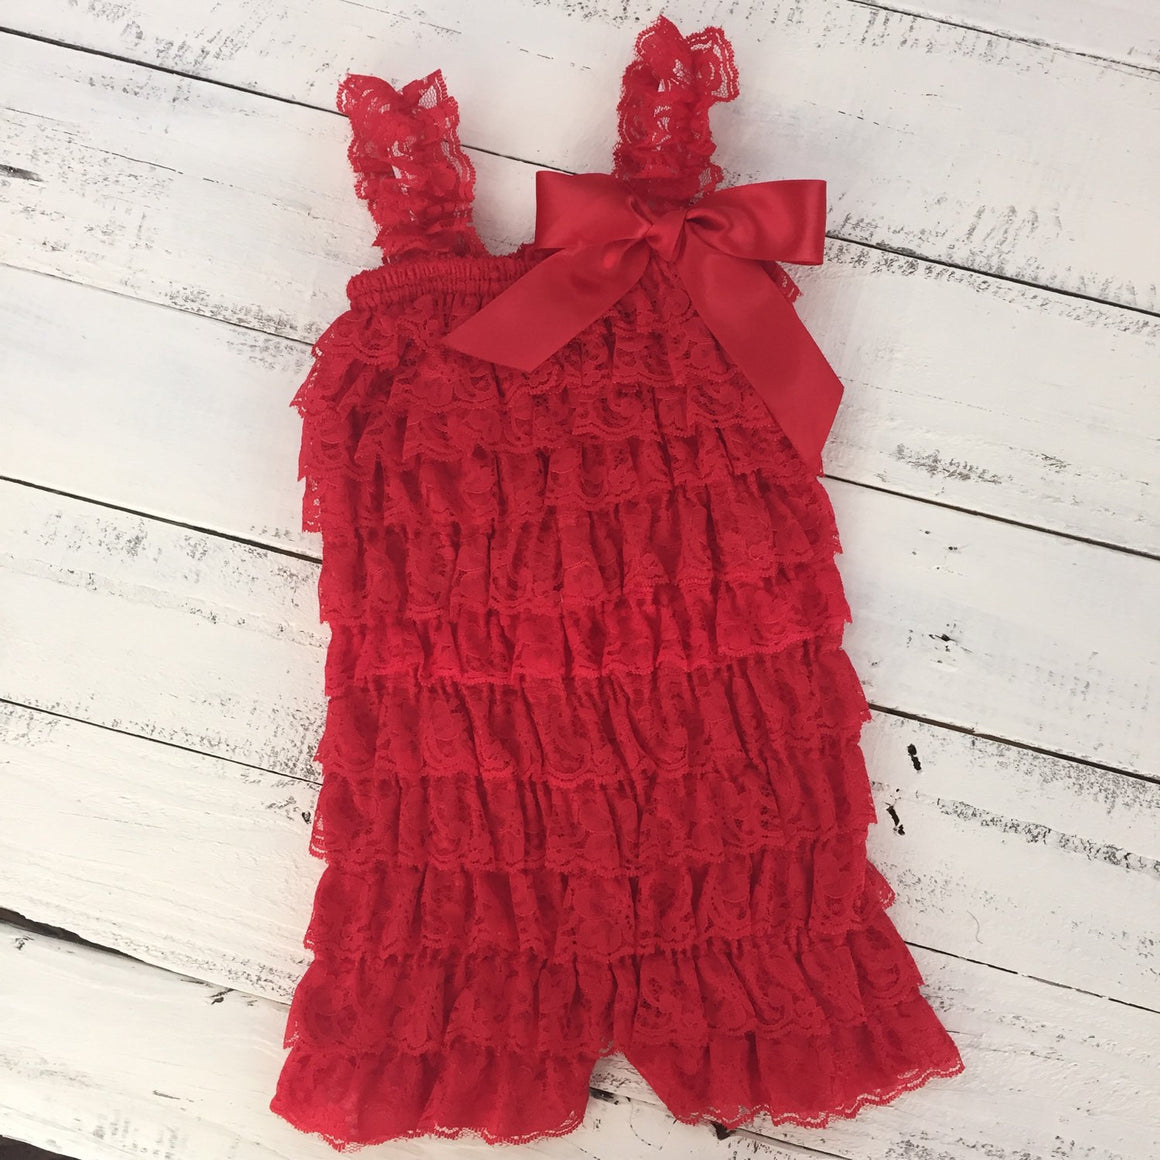 Lace Petti Romper - Red, White, Royal Blue, Navy - HoneyLoveBoutique